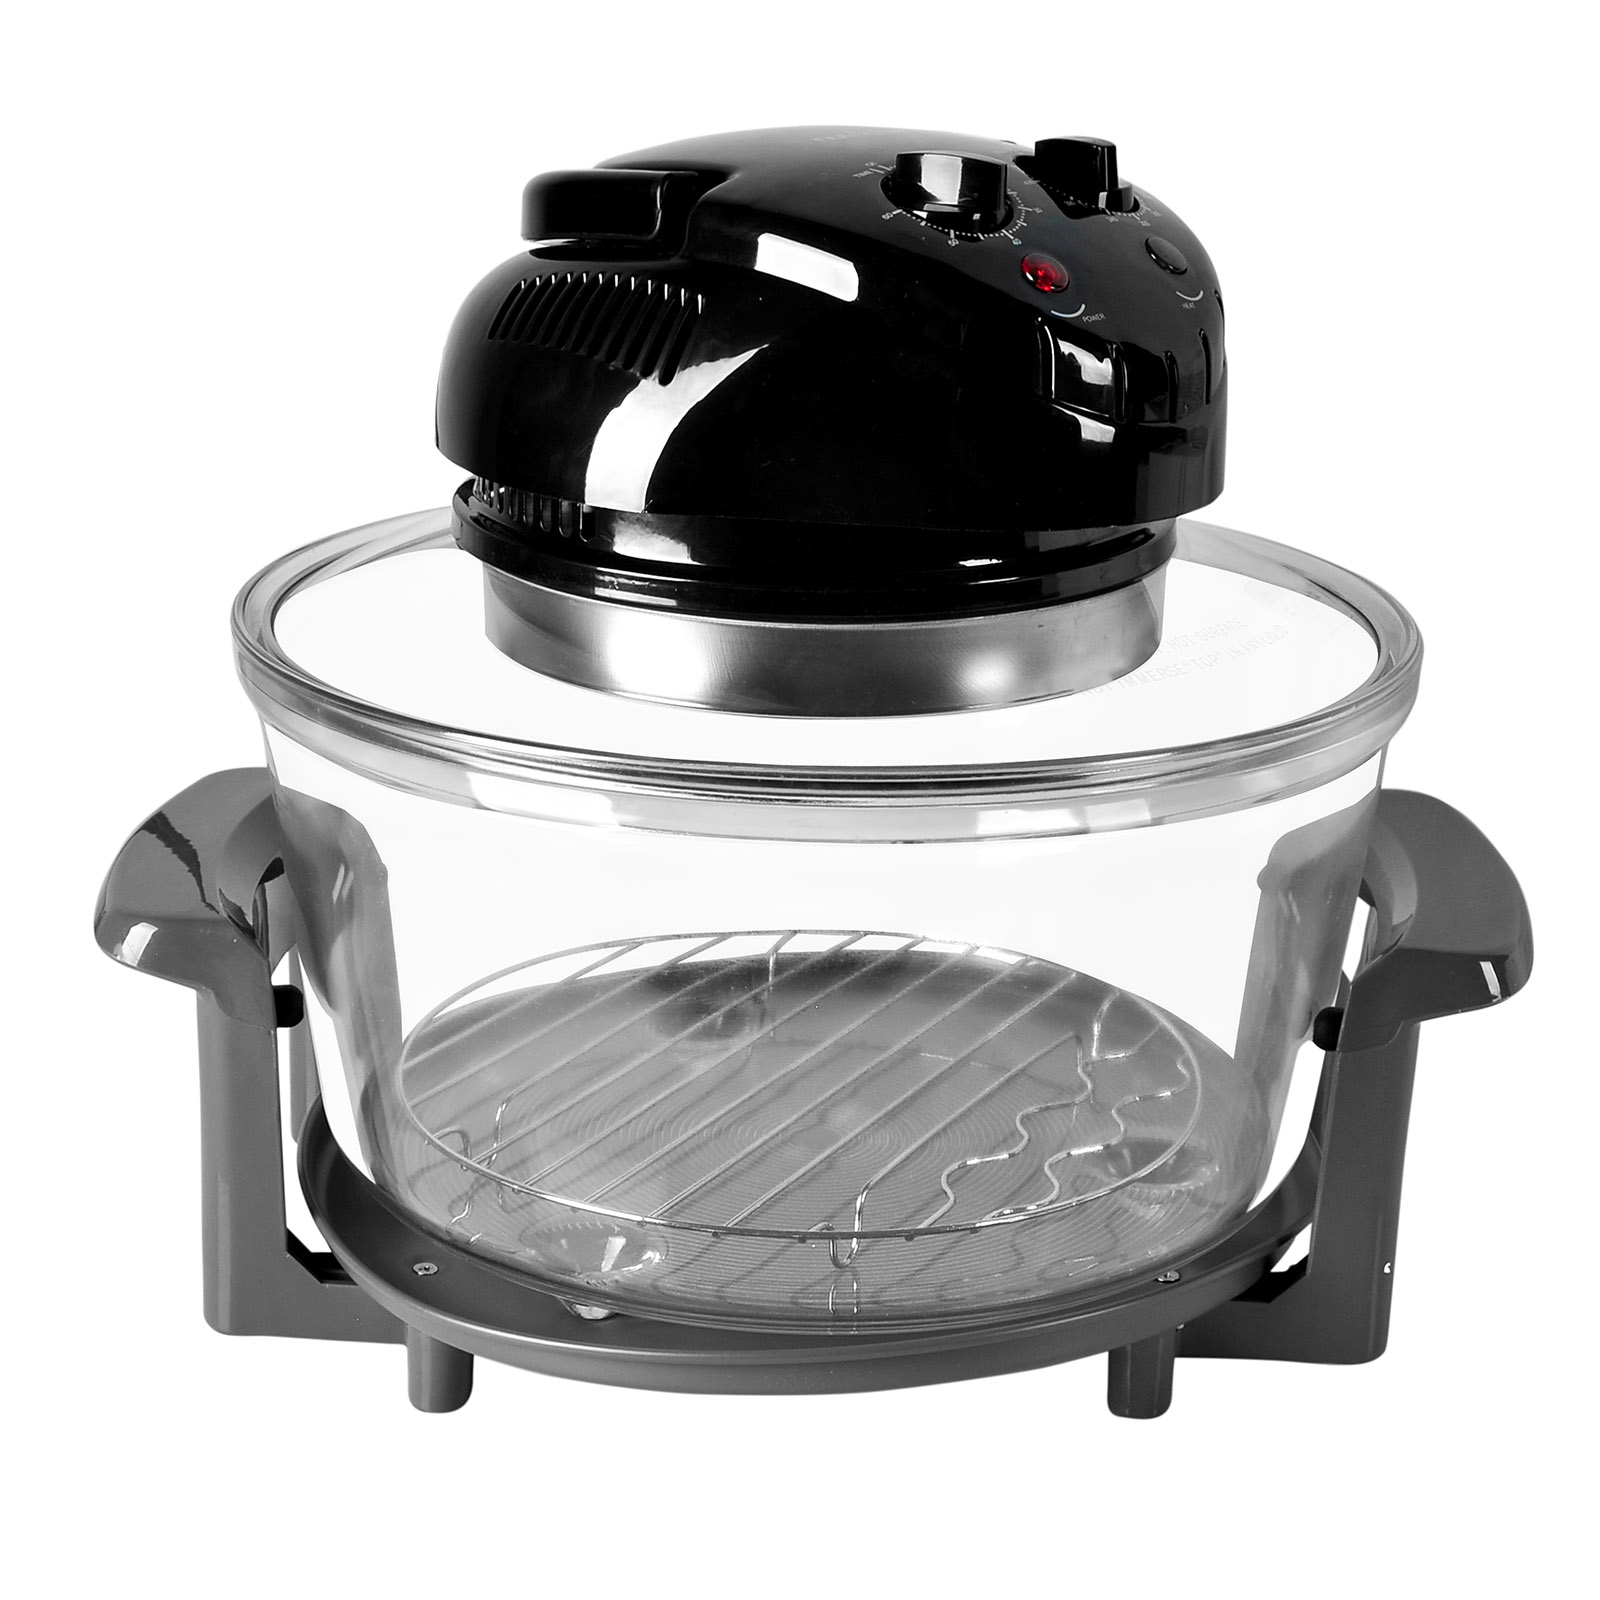 NutriChef Convection Oven Cooker, Healthy Kitchen Countertop Cooking by Nutrichef